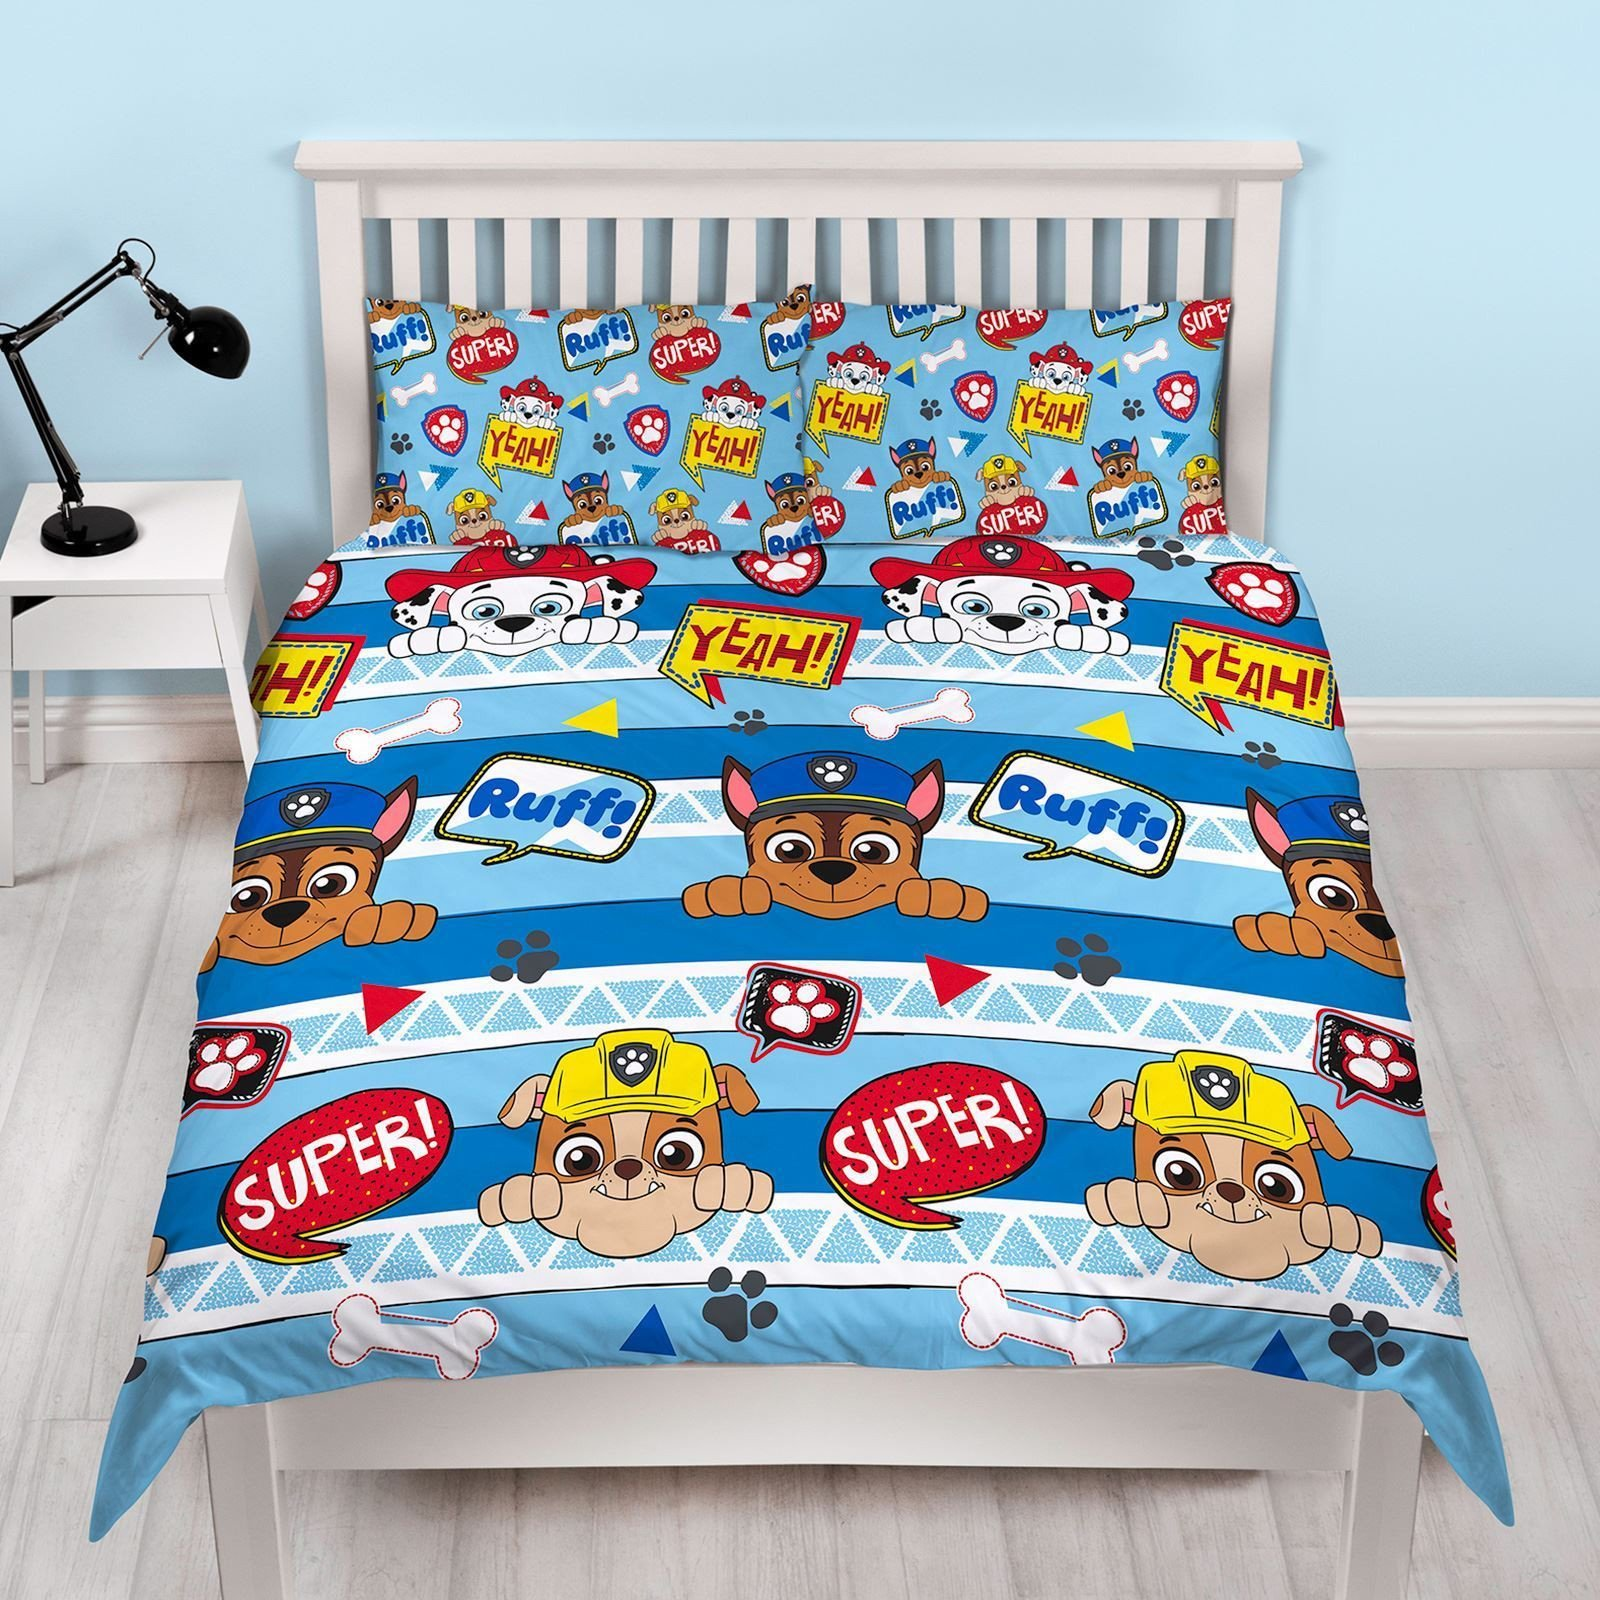 Paw Patrol Bedroom Furniture Fresh Details About New Paw Patrol Double Duvet Quilt Cover Bedding Set Boys Kids Blue Bed Bedroom